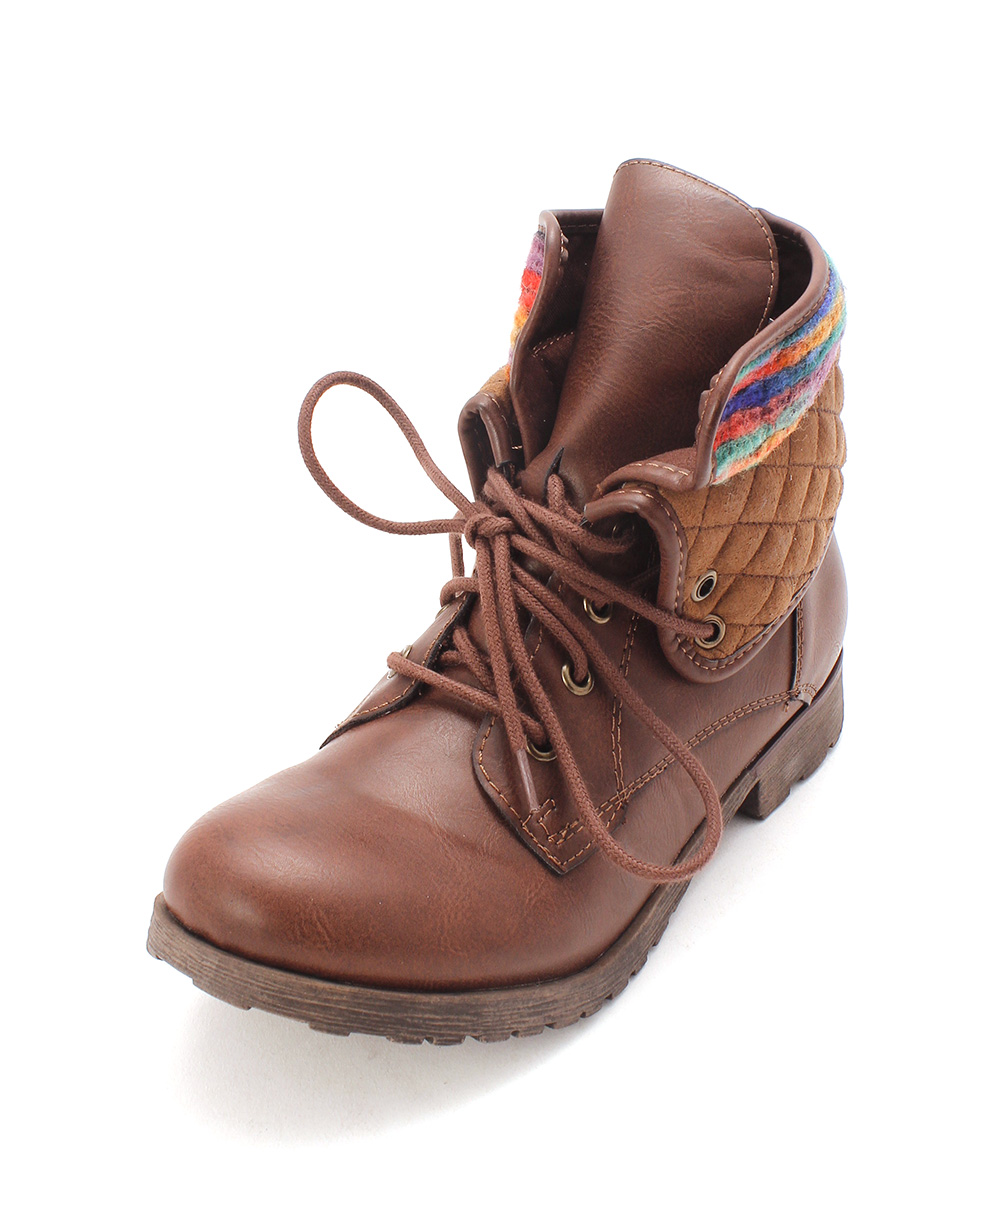 Womens Spraypaint-Q Closed Toe Ankle Fashion Boots